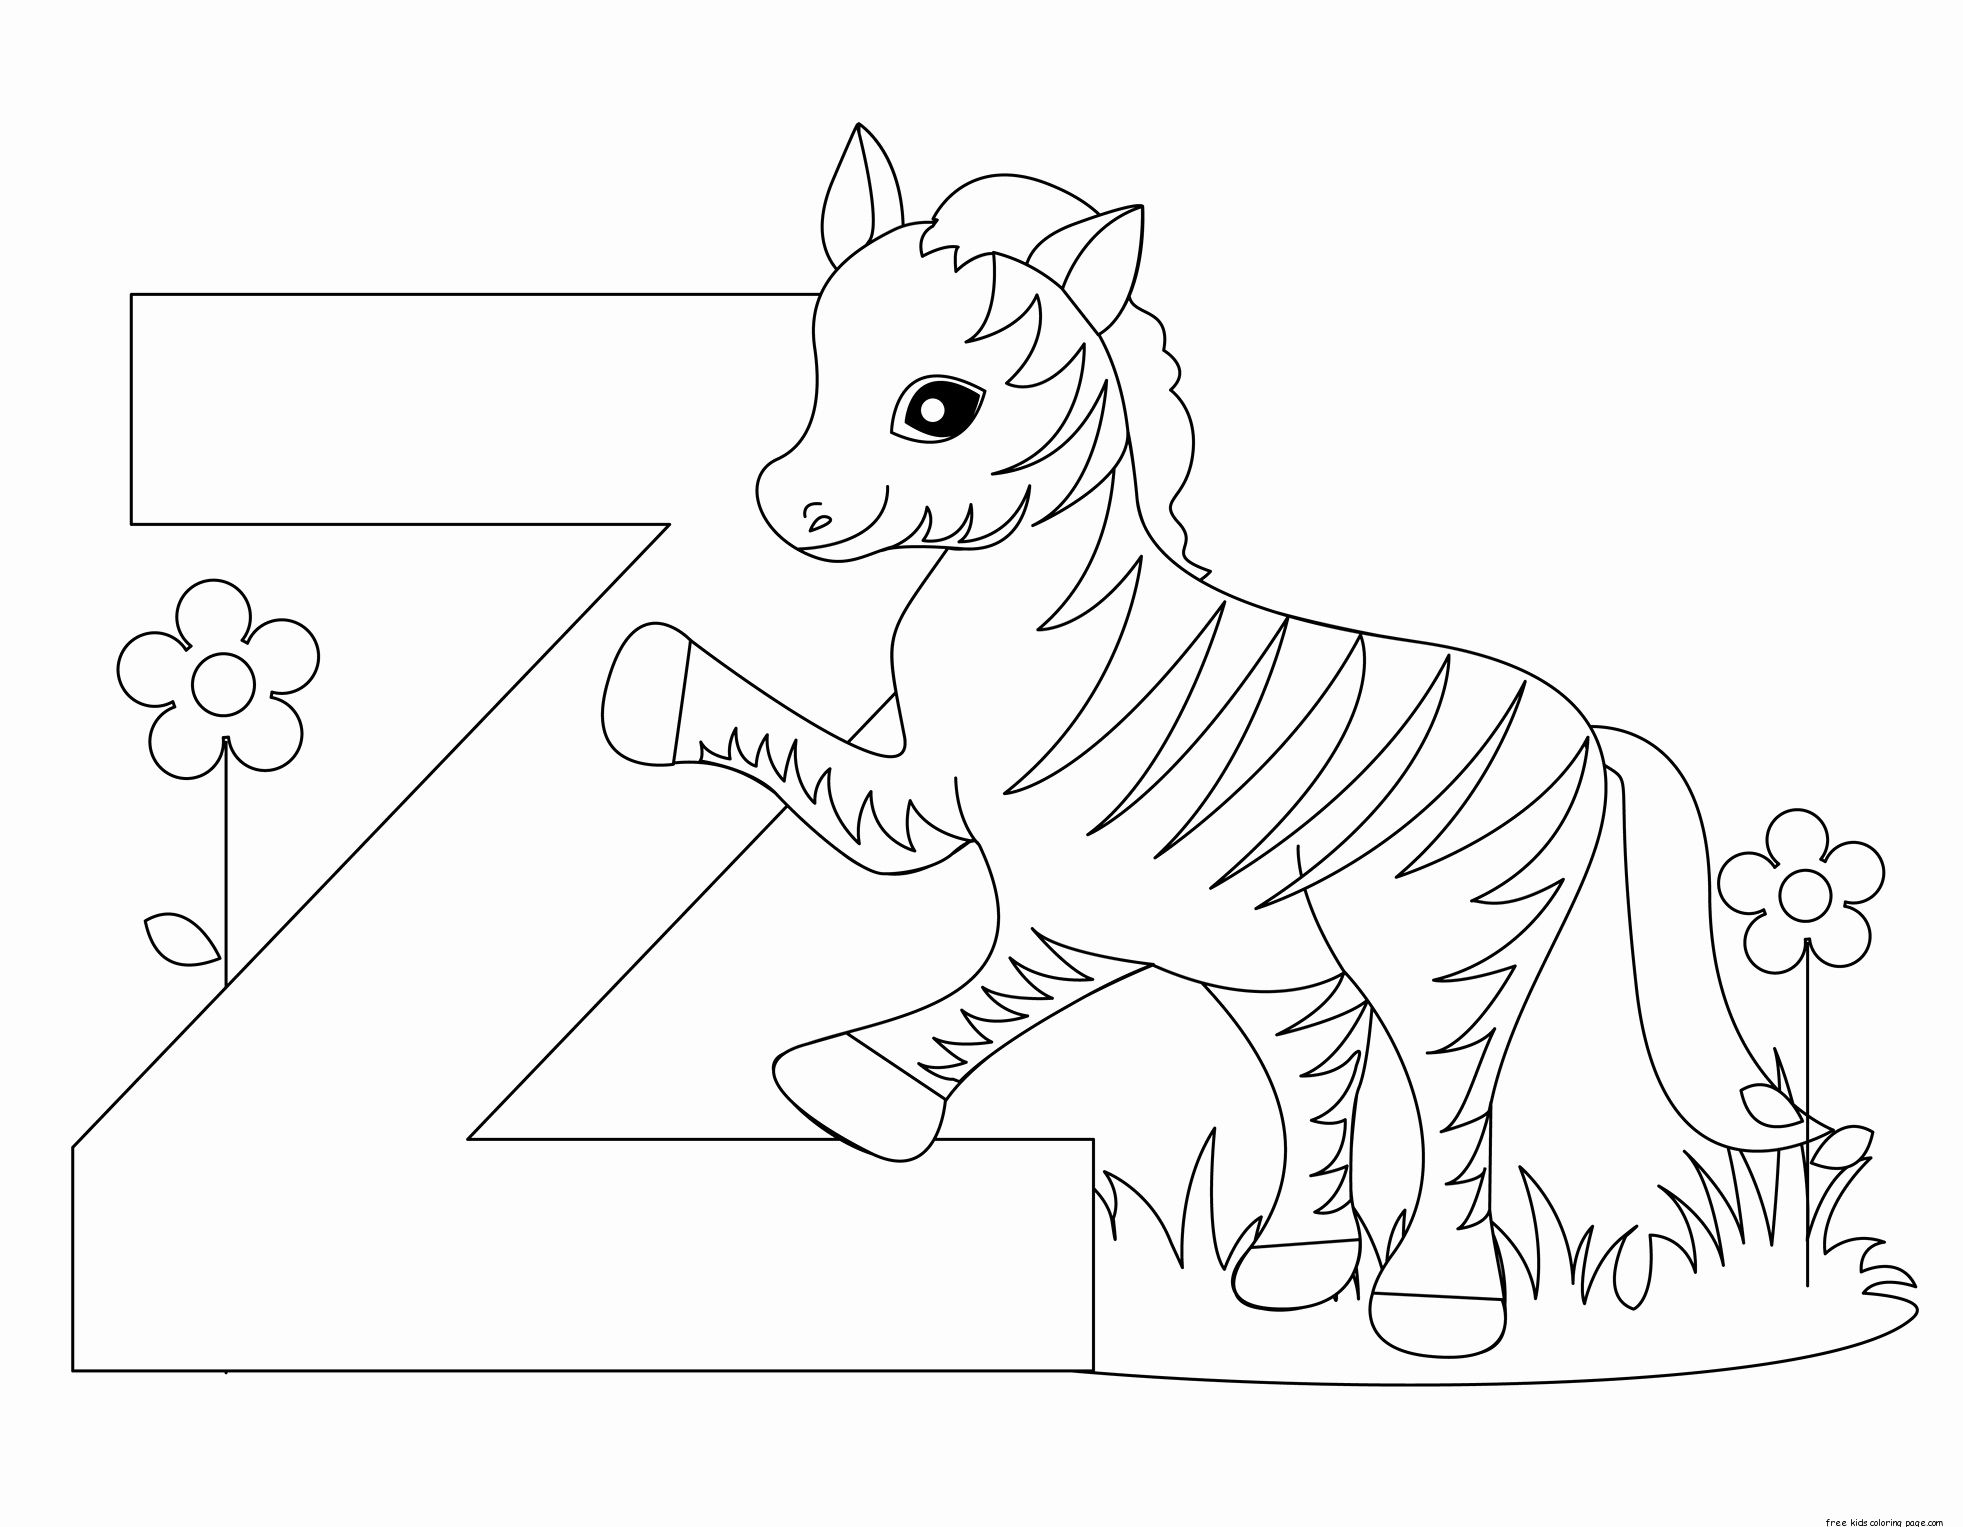 Alphabet Coloring Pages Free Luxury Printable Alphabet Letter Z Worksheet For Preschoolfree In 2020 Zebra Coloring Pages Letter A Coloring Pages Animal Coloring Pages